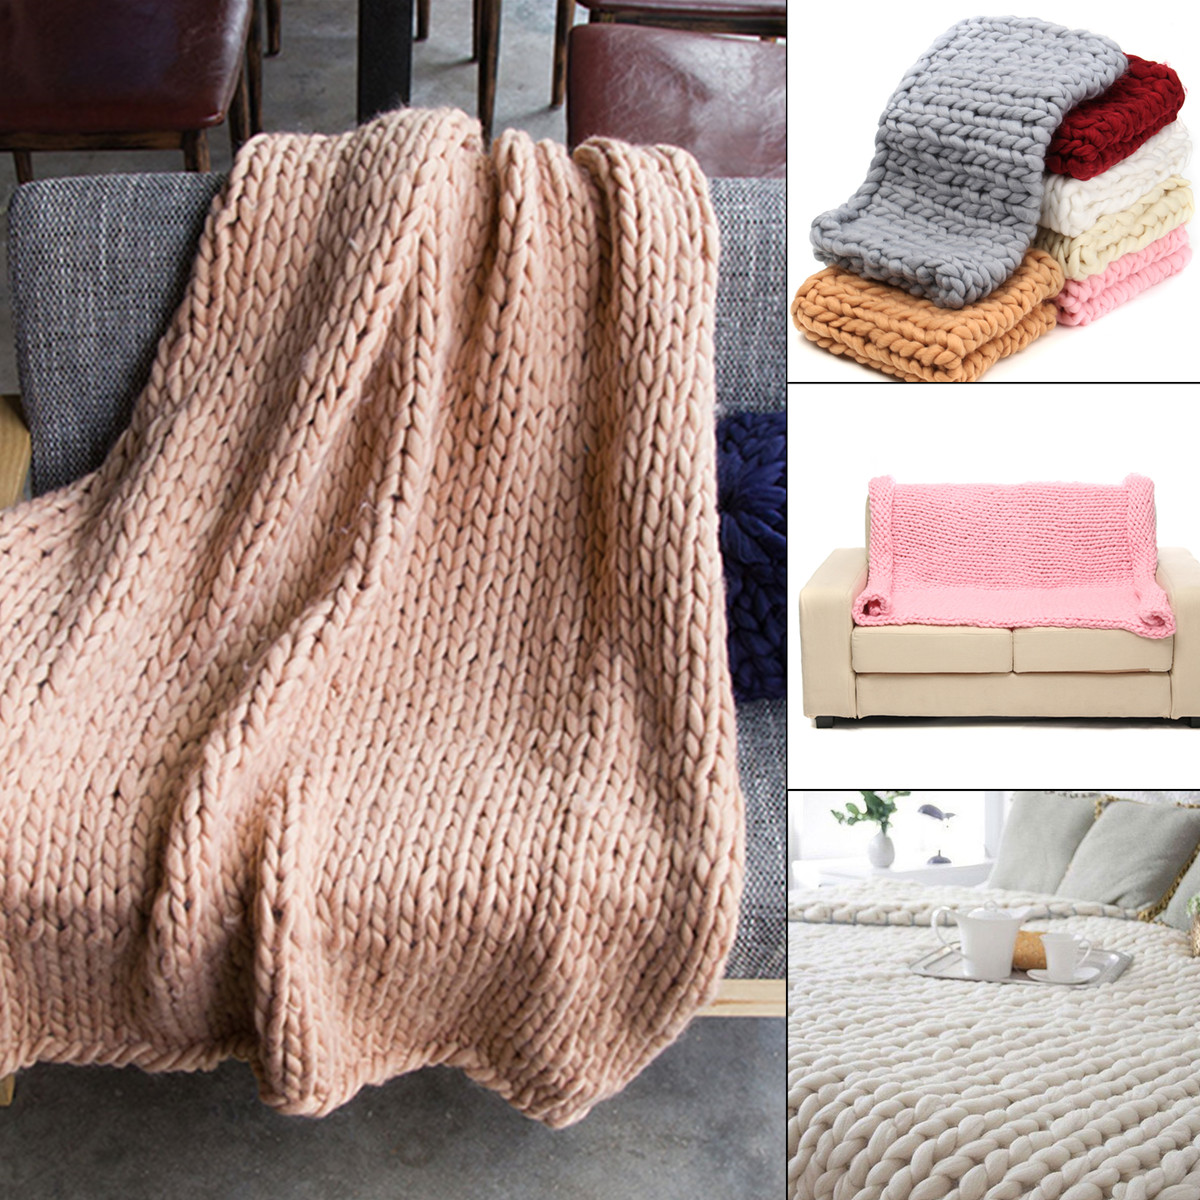 Grtsunsea Hand-woven Bulky Warm Soft Chunky Knit Bedding Blanket Thick Yarn Knitted Sofa Throw Rug - 59''x47''